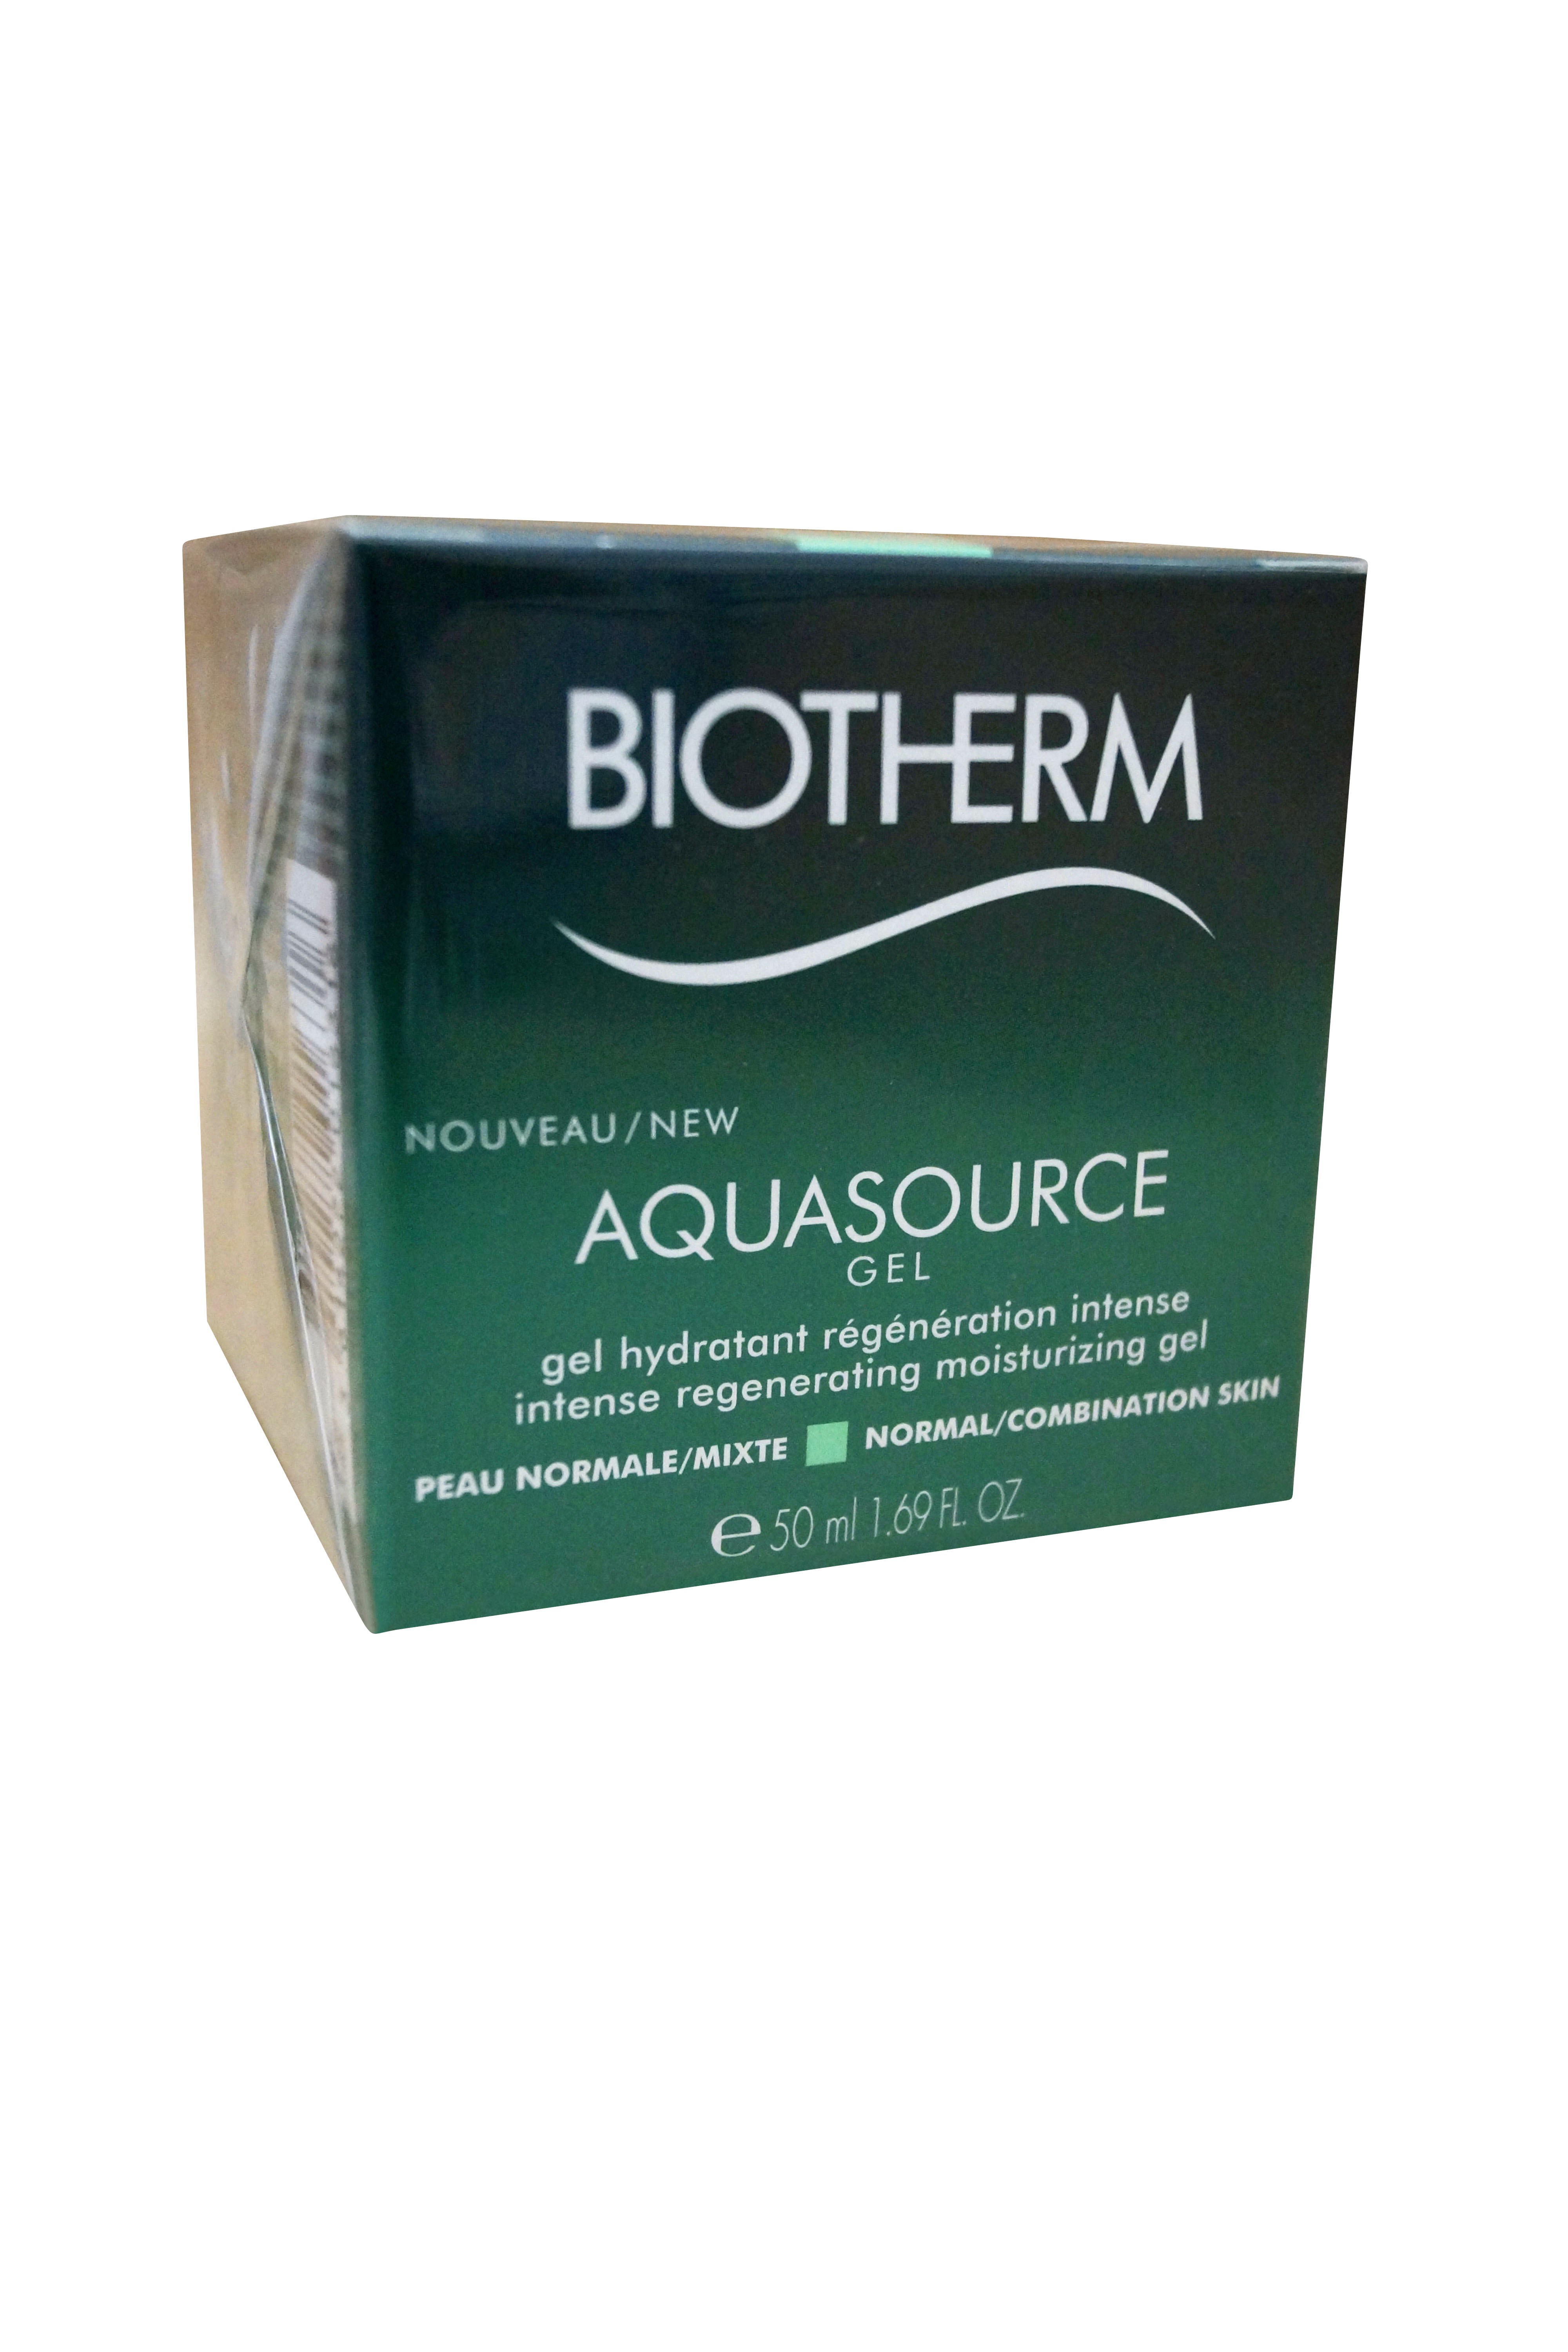 Aquasource Moisturizing Cream For Normal To Mixed Skin by Biotherm #7